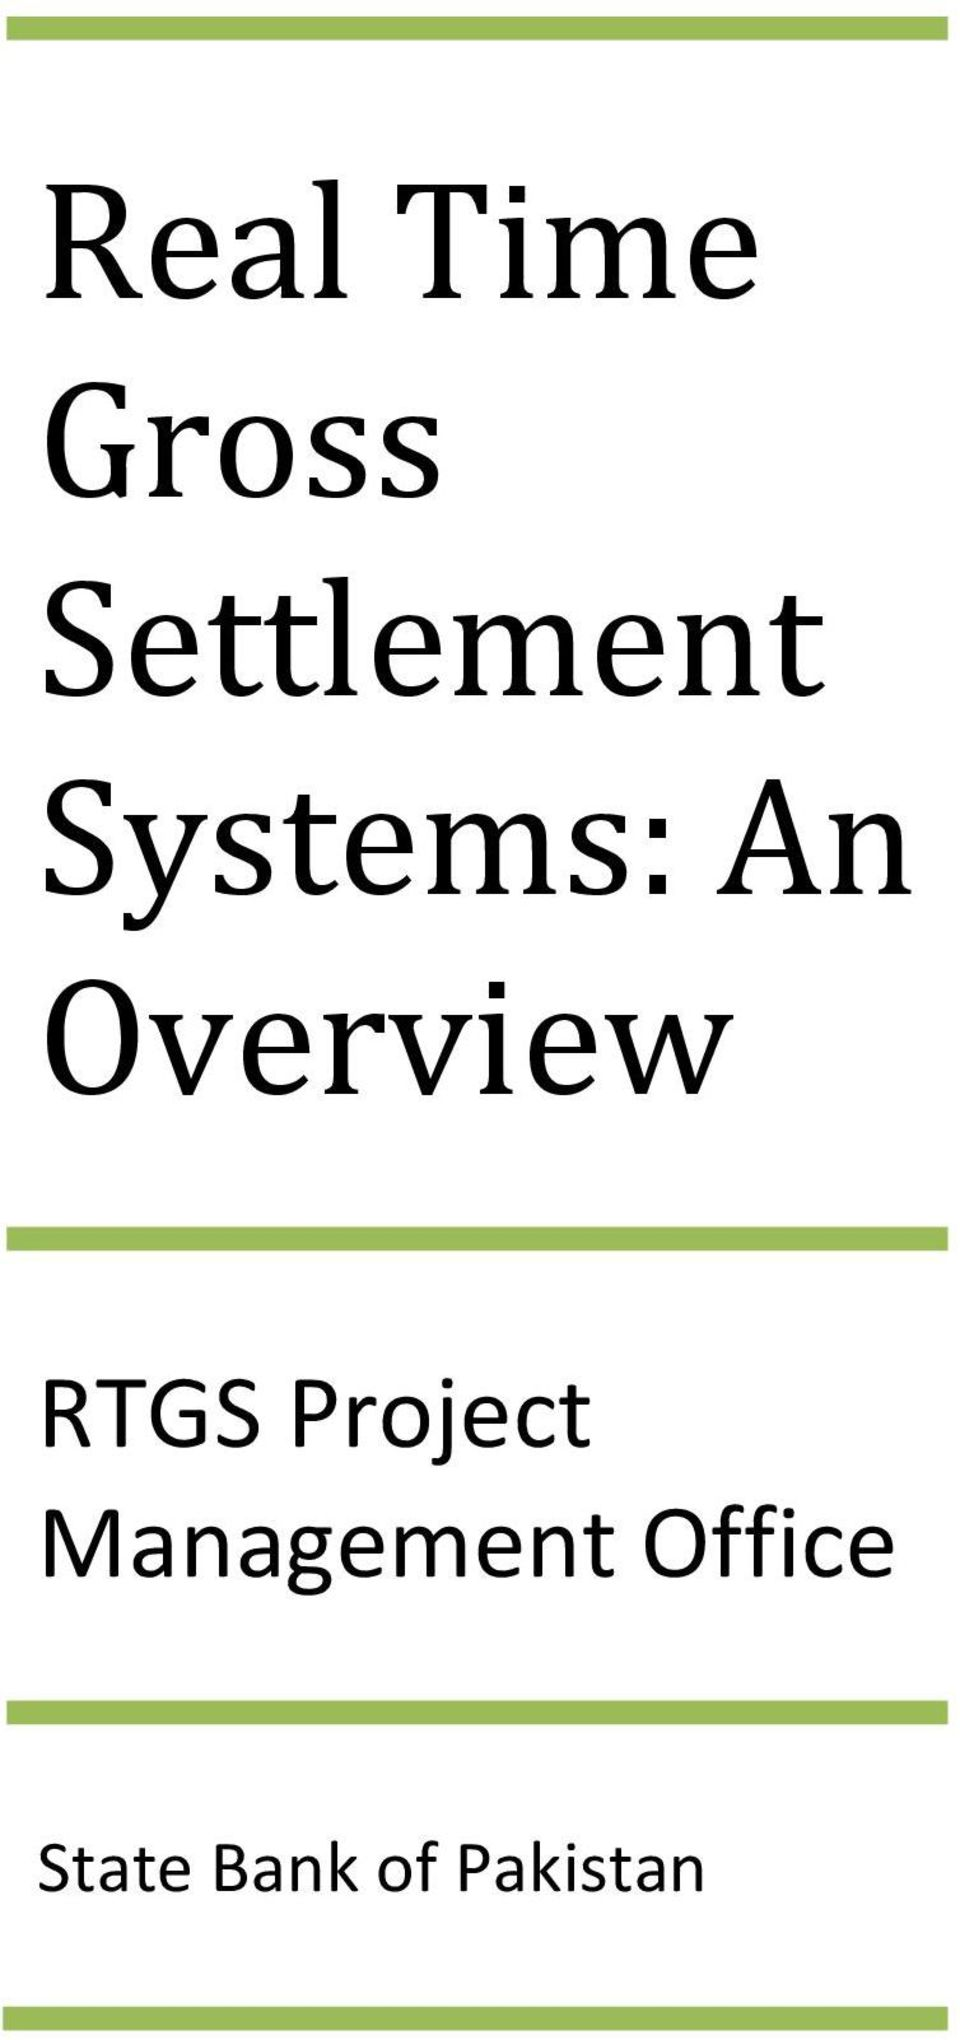 Overview RTGS Project